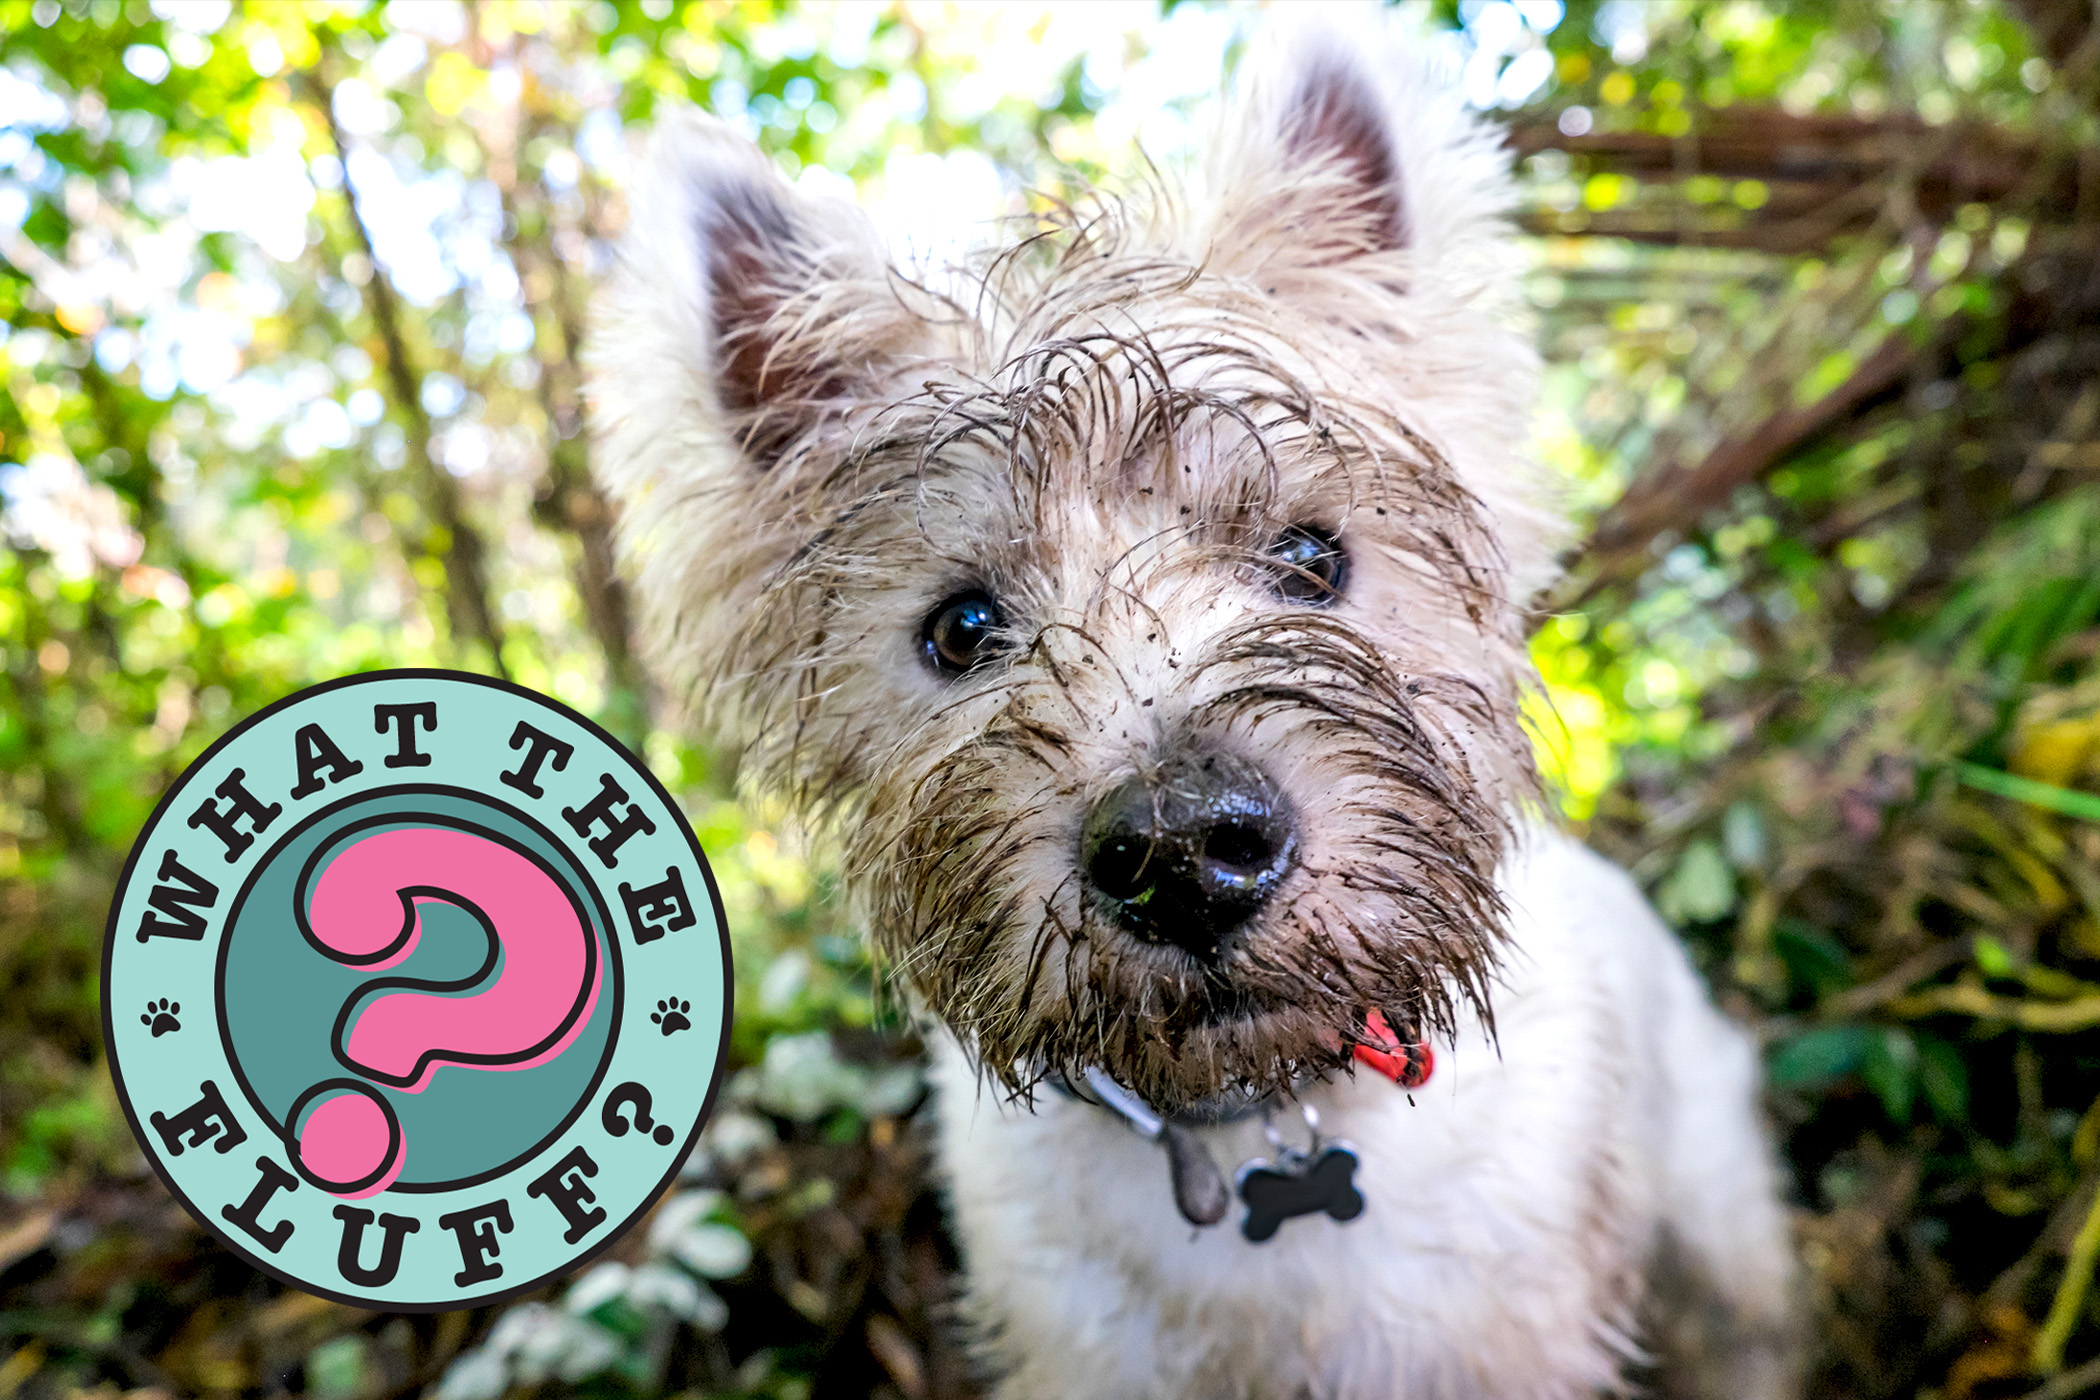 White terrier close-up with mud-covered face next to What the Fluff logo